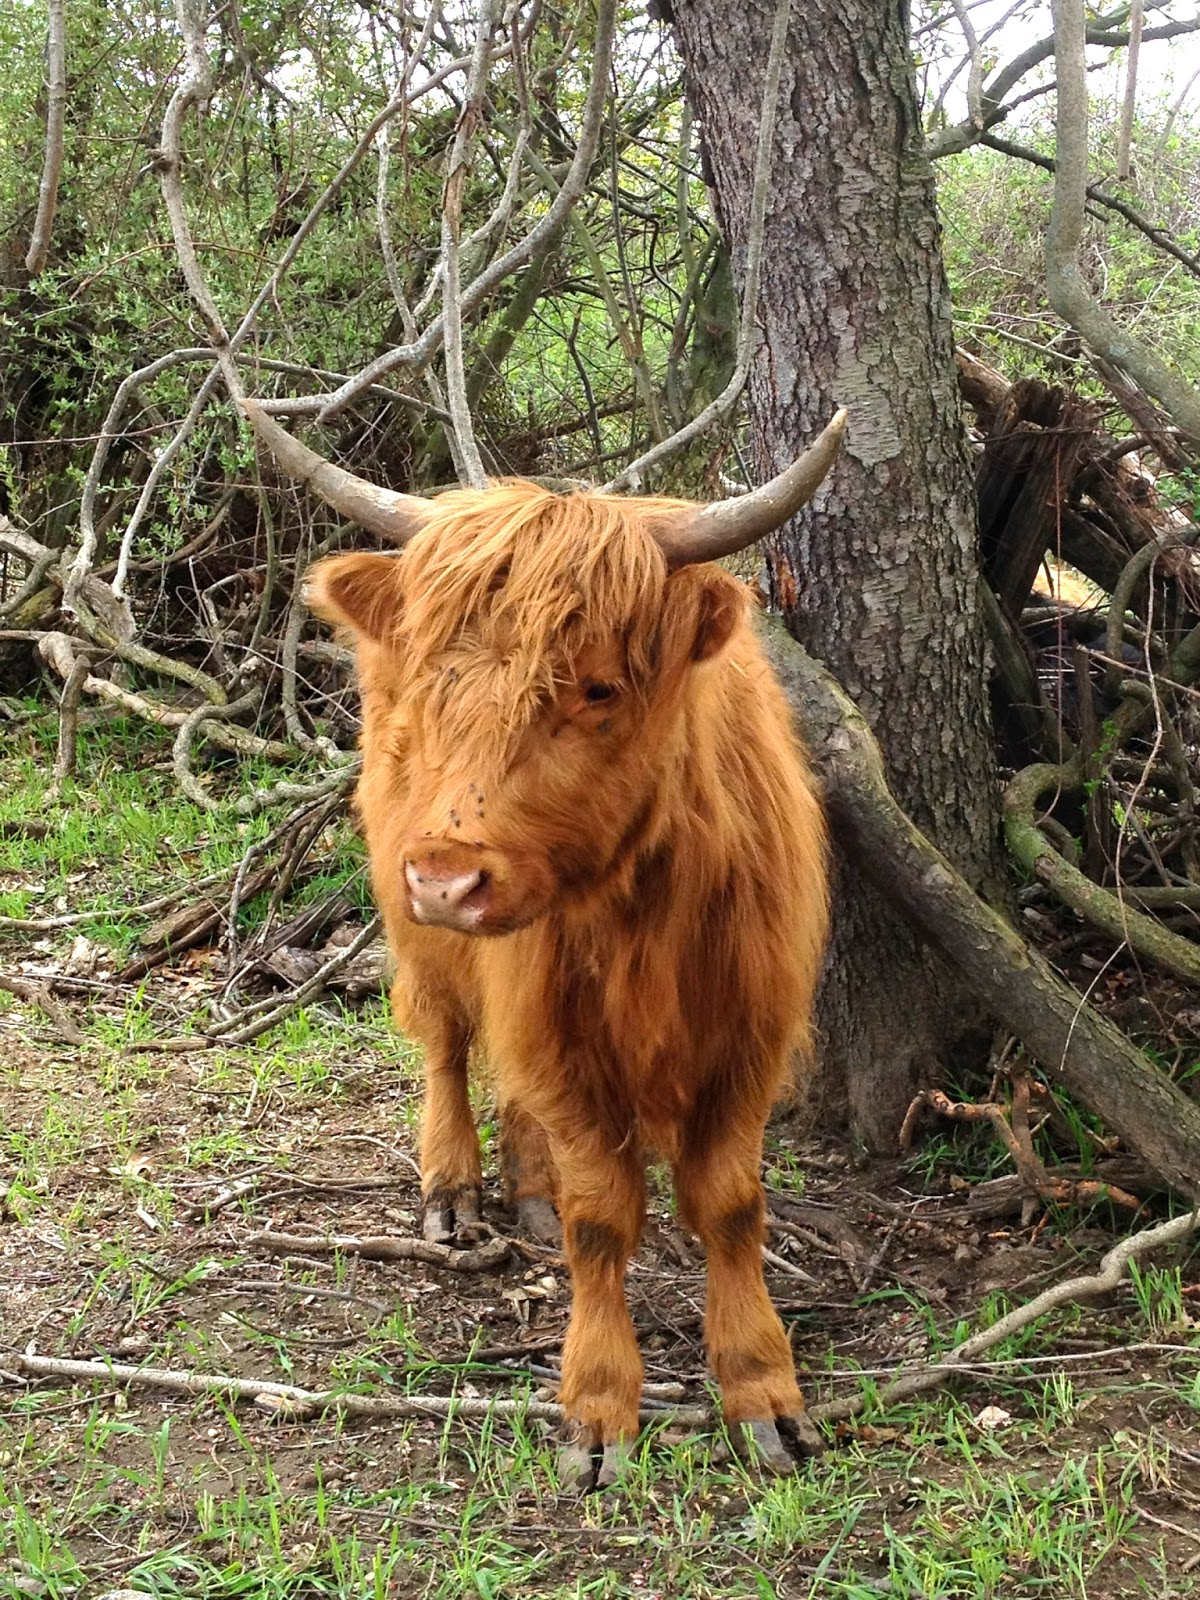 Extremely hairy cow